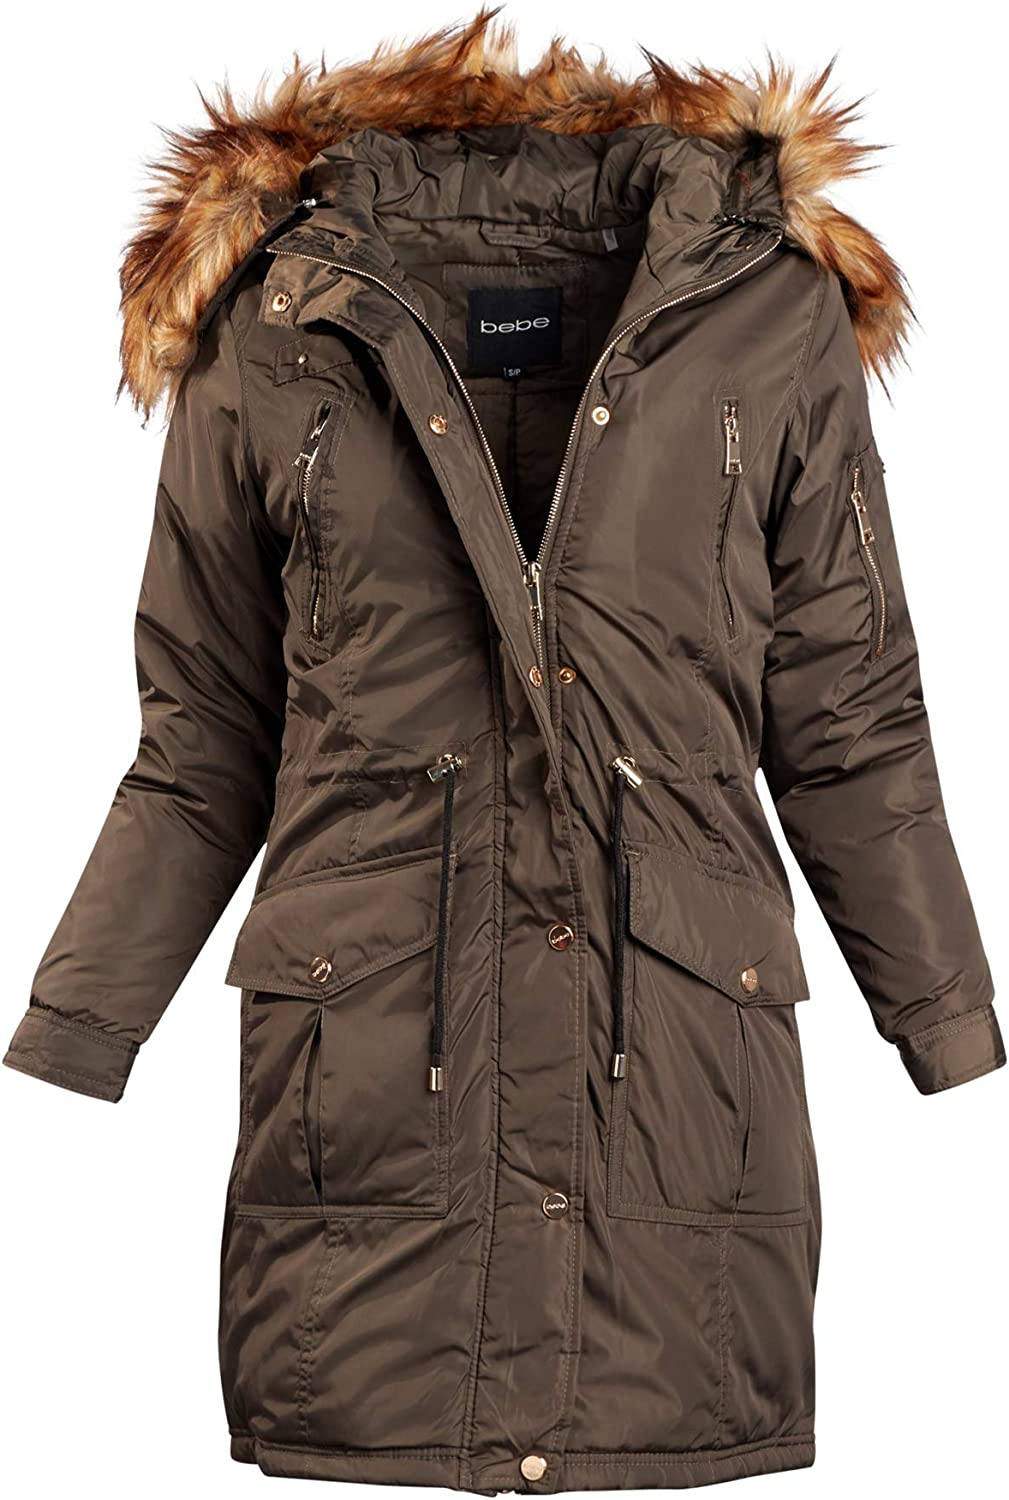 Heavyweight Insulated Long Length Parka Jacket with Faux Fur Hood bebe Womens Outerwear